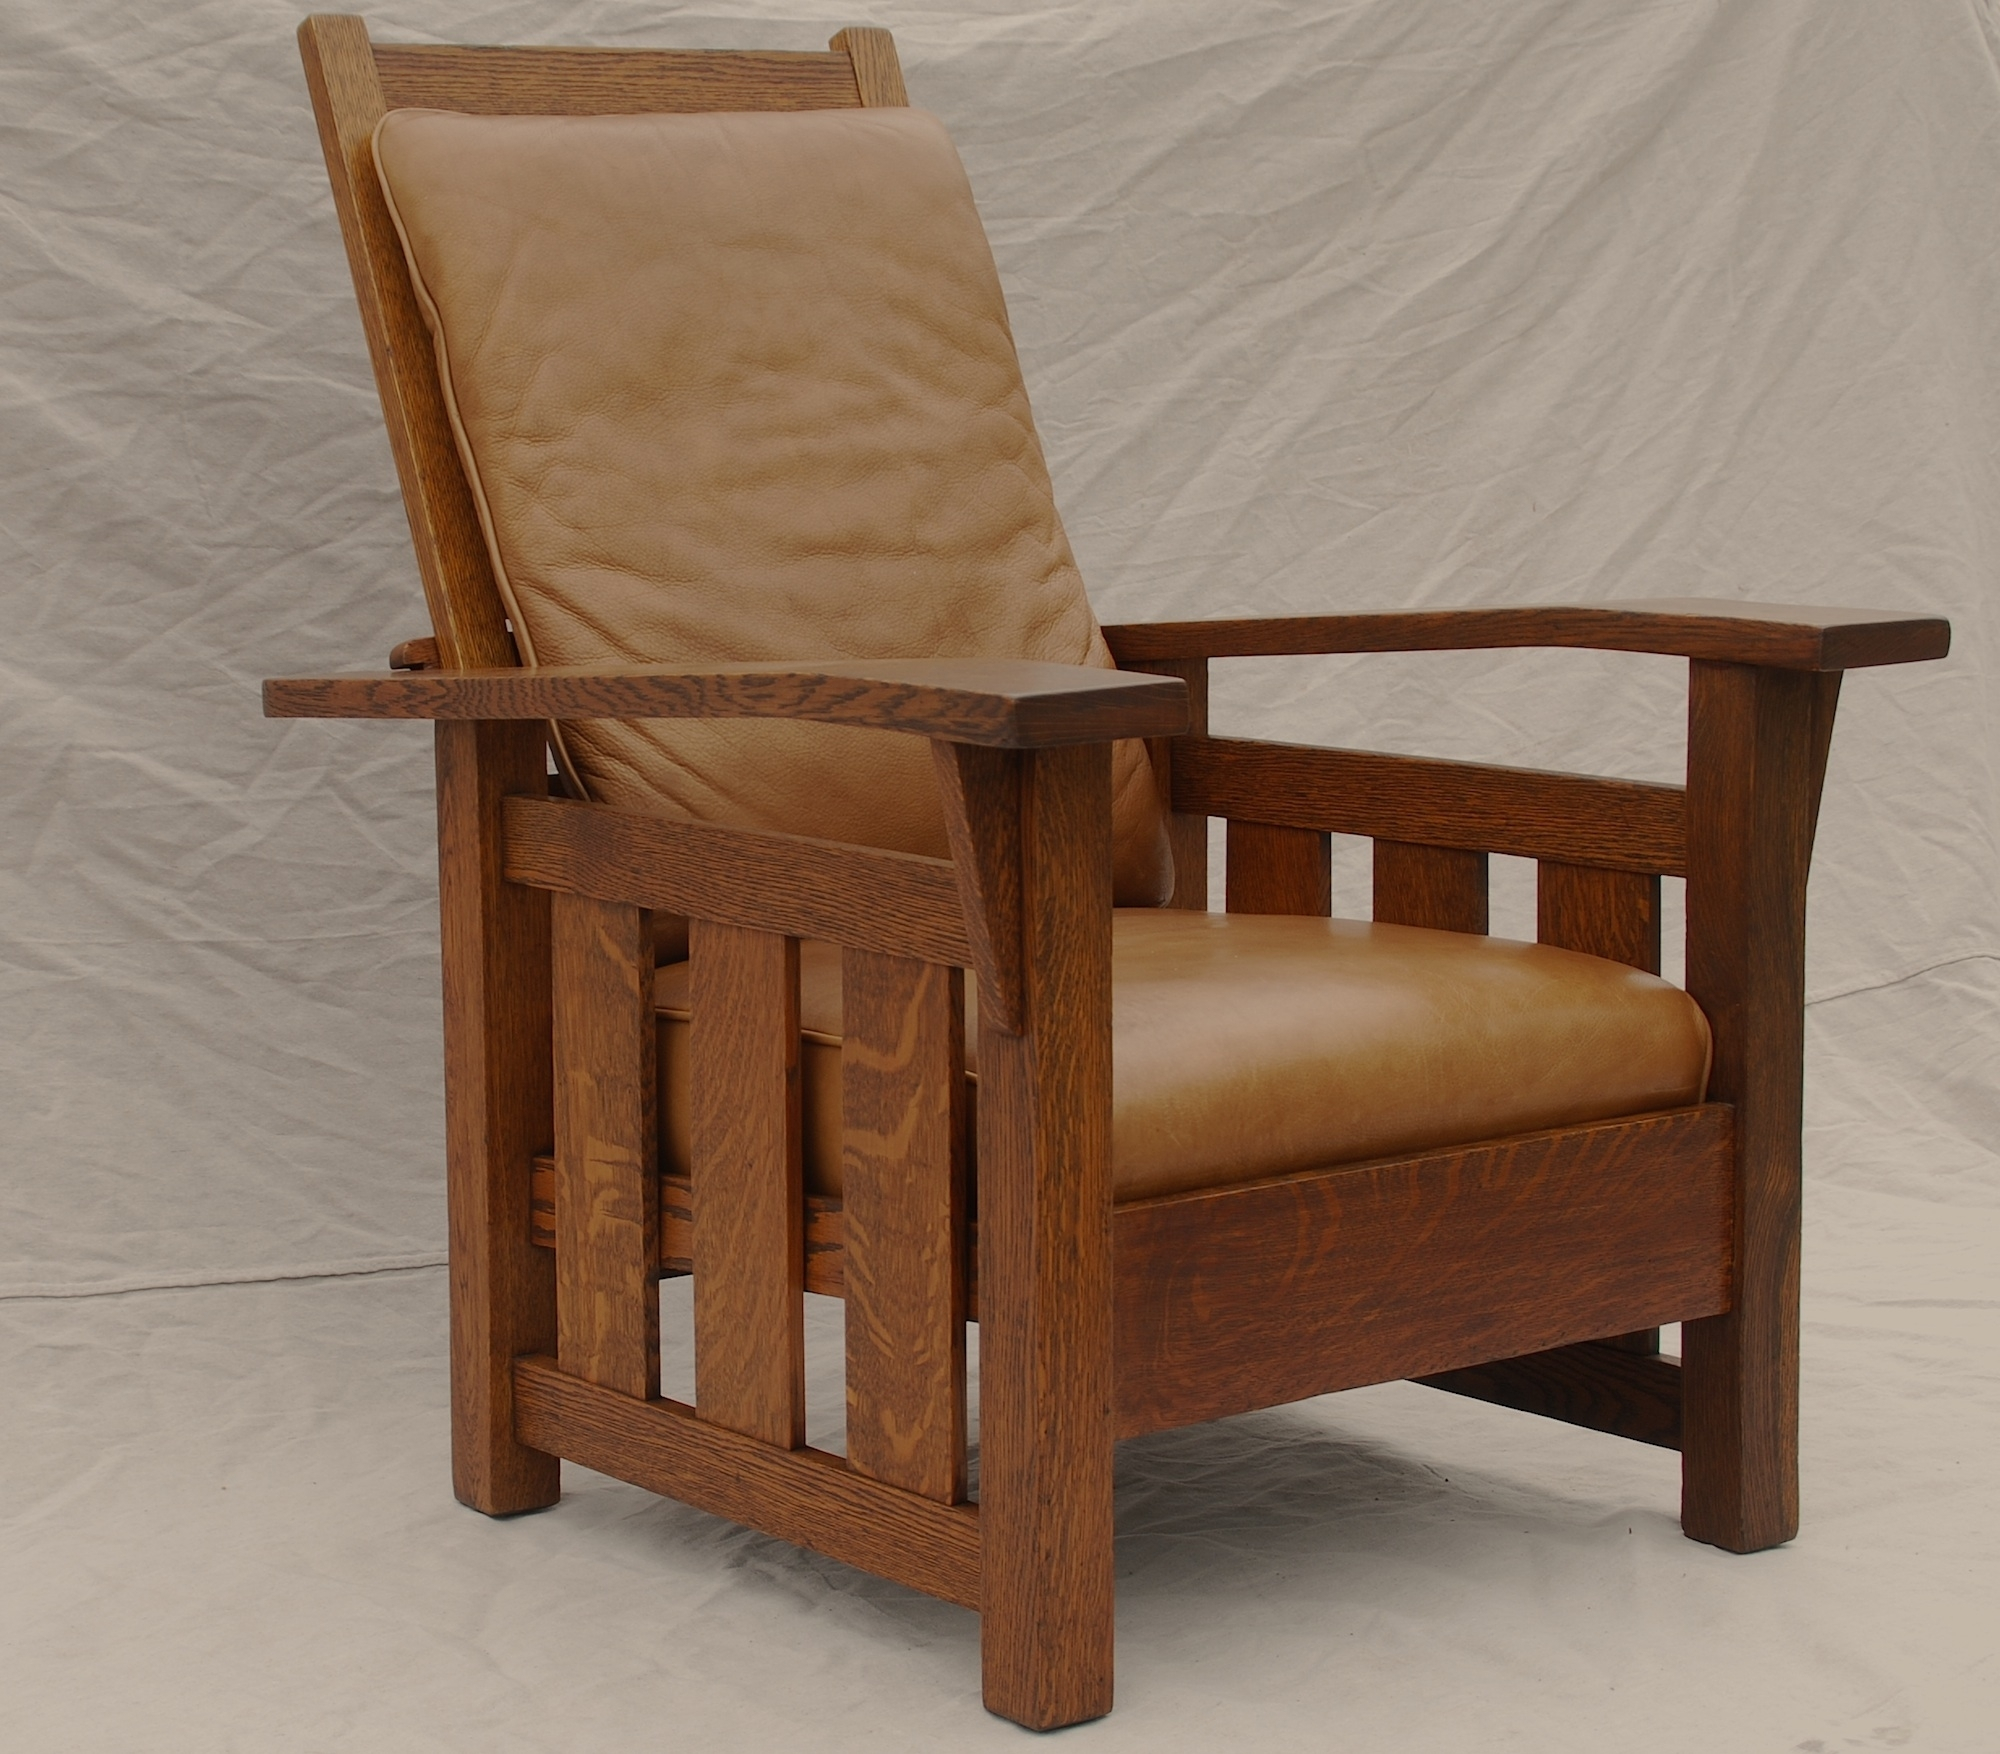 Most Recently Released Craftsman Arm Chairs Regarding Voorhees Craftsman Mission Oak Furniture – Stickley Era Quaint Art (#15 of 20)